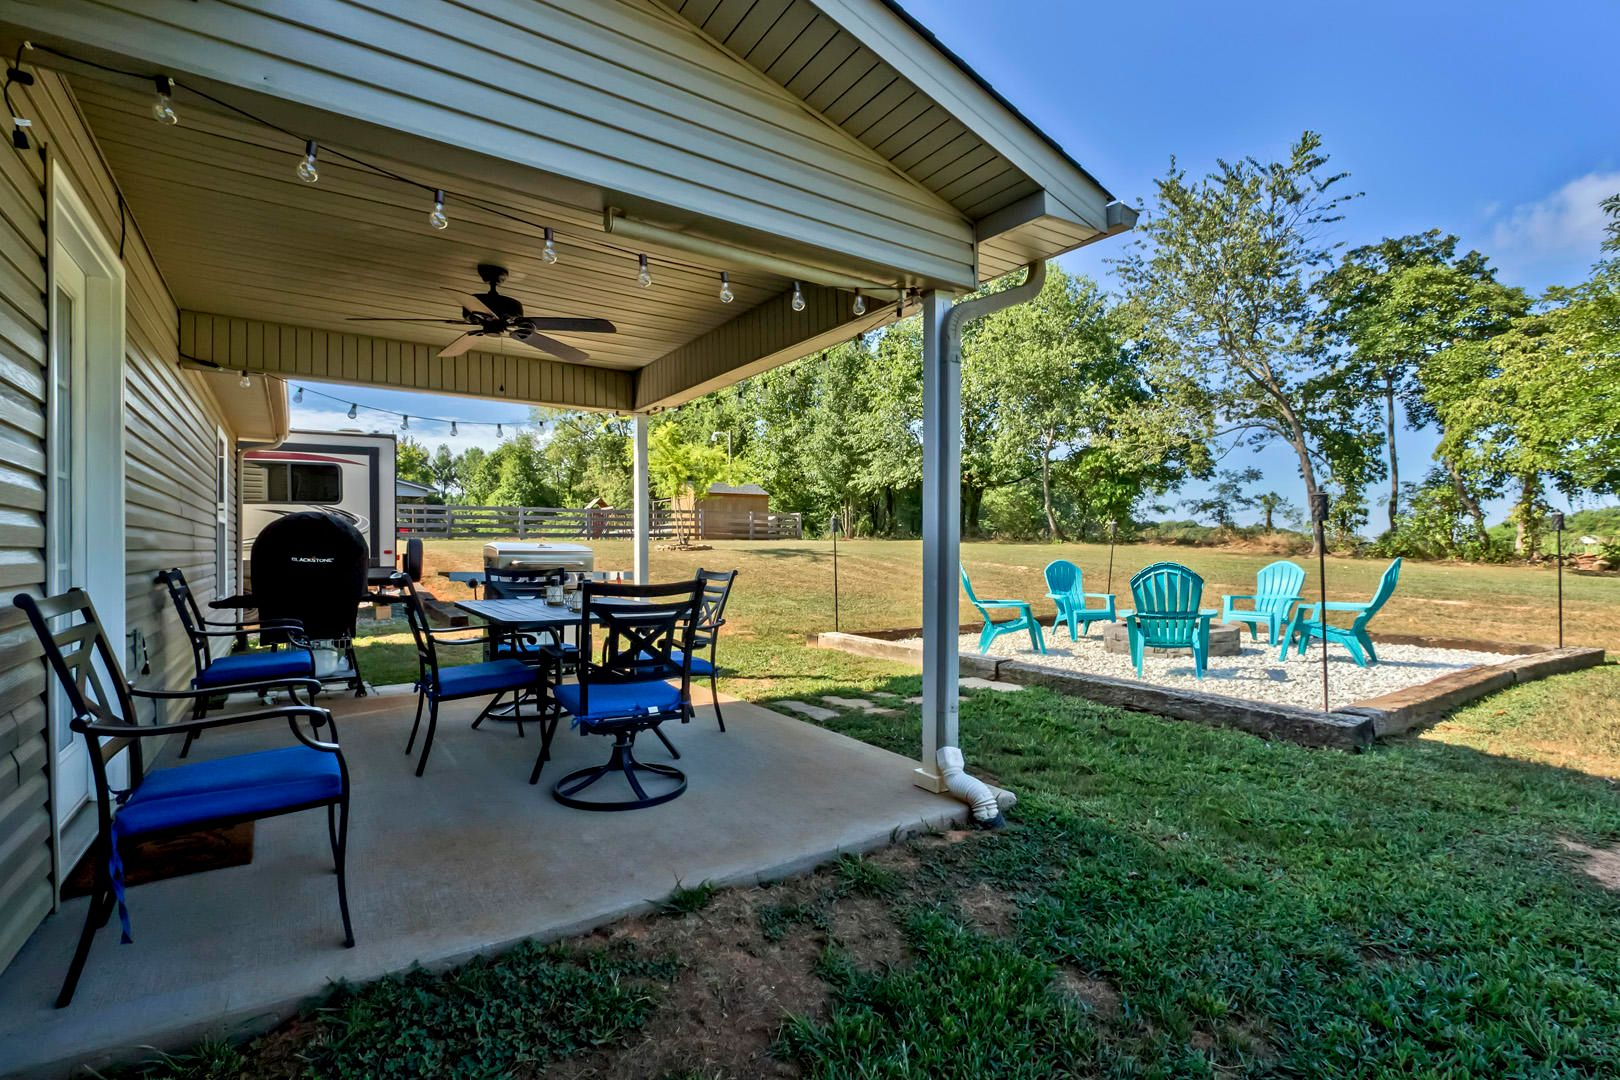 30_PuttersGreenLane_241_CoveredPatio02-F